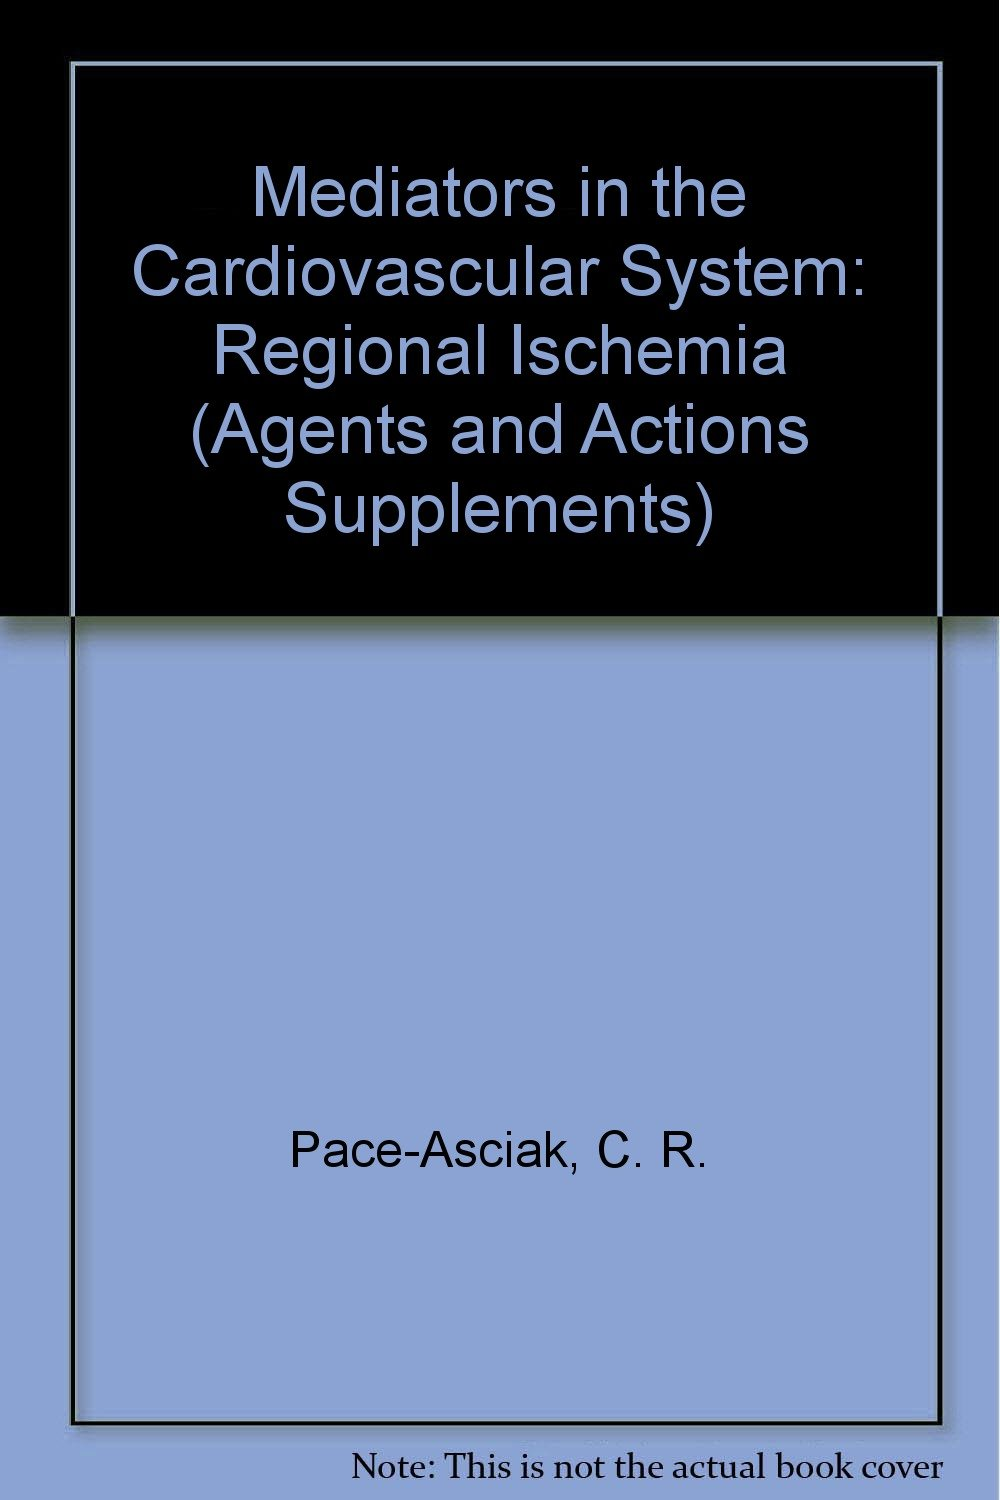 Mediators in the Cardiovascular System: Regional Ischemia (Agents & Actions Supplements)